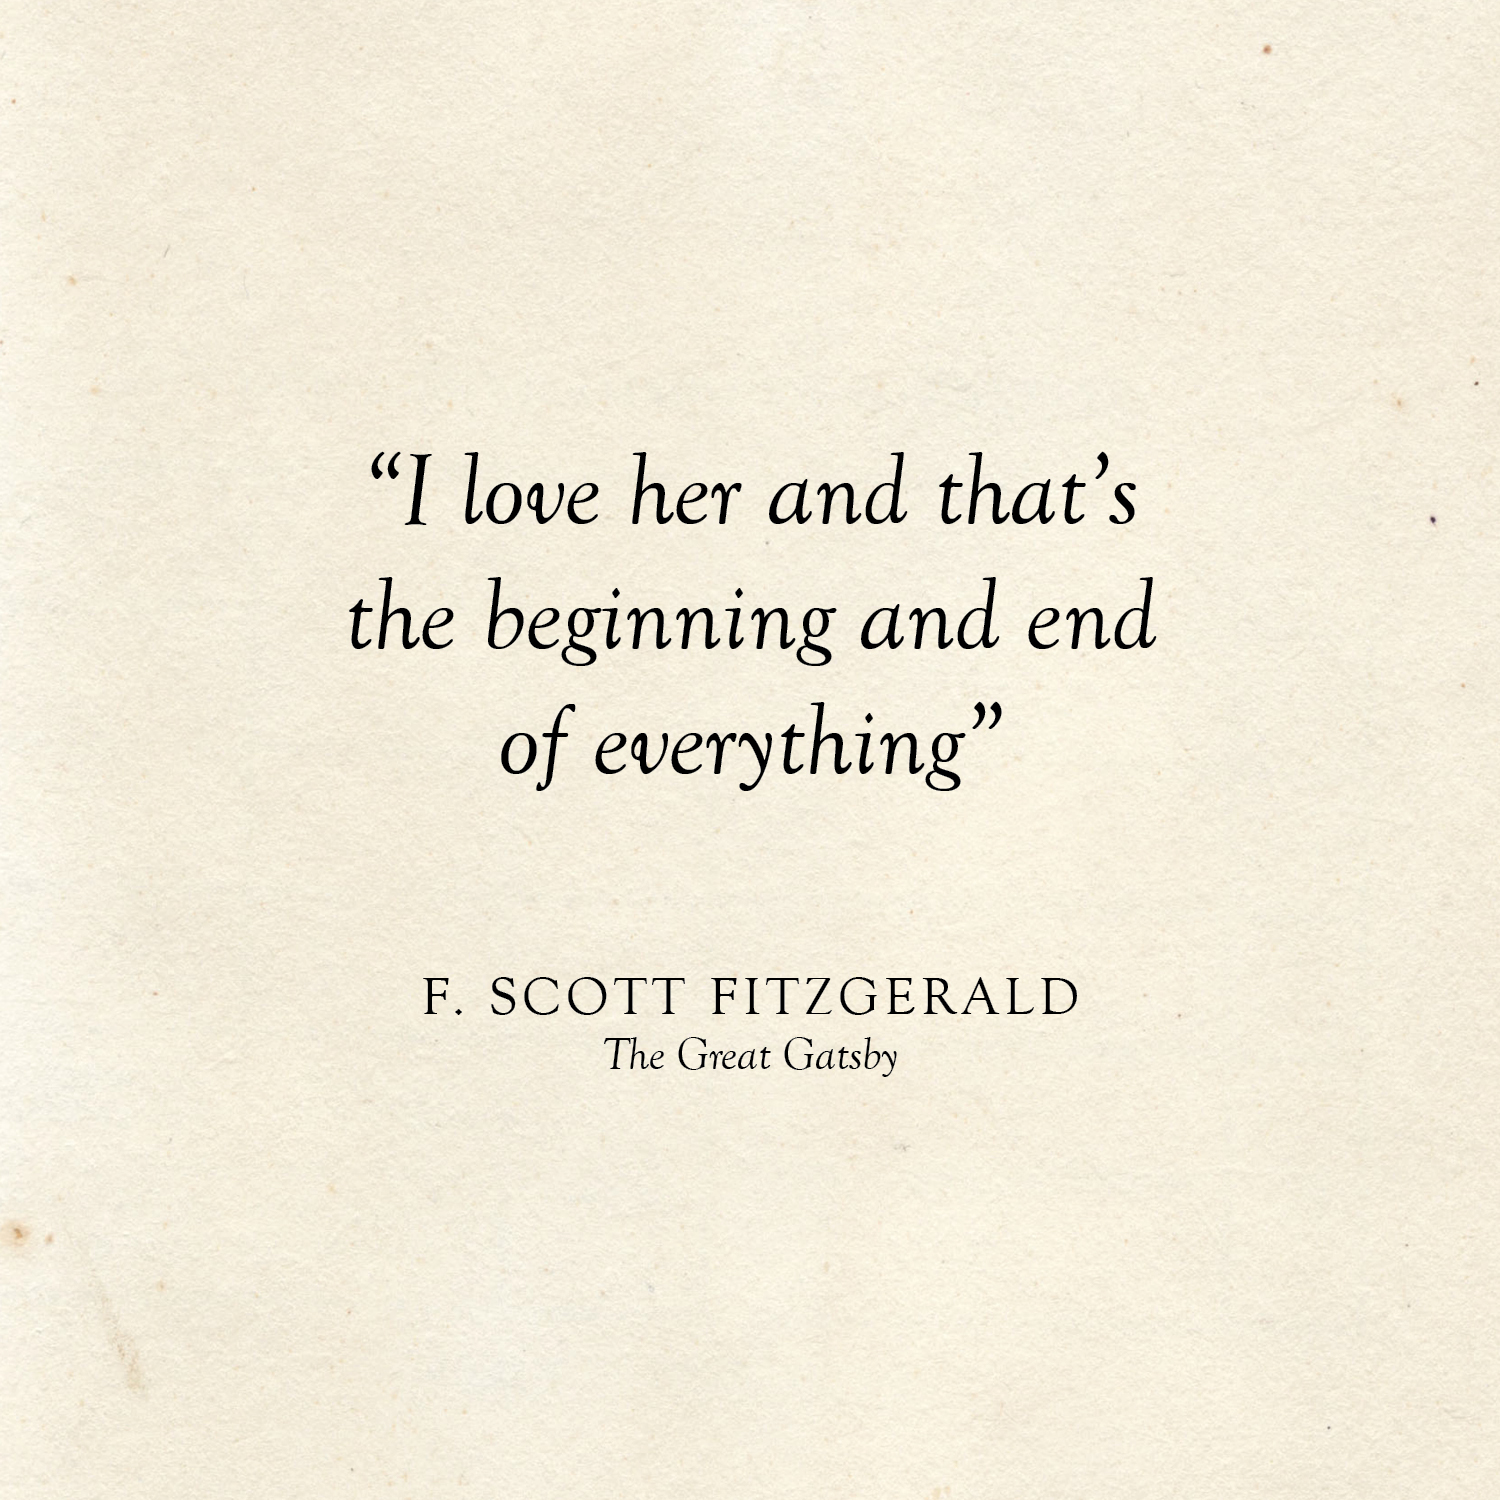 Literary Wedding Love Quotes Posted Fete